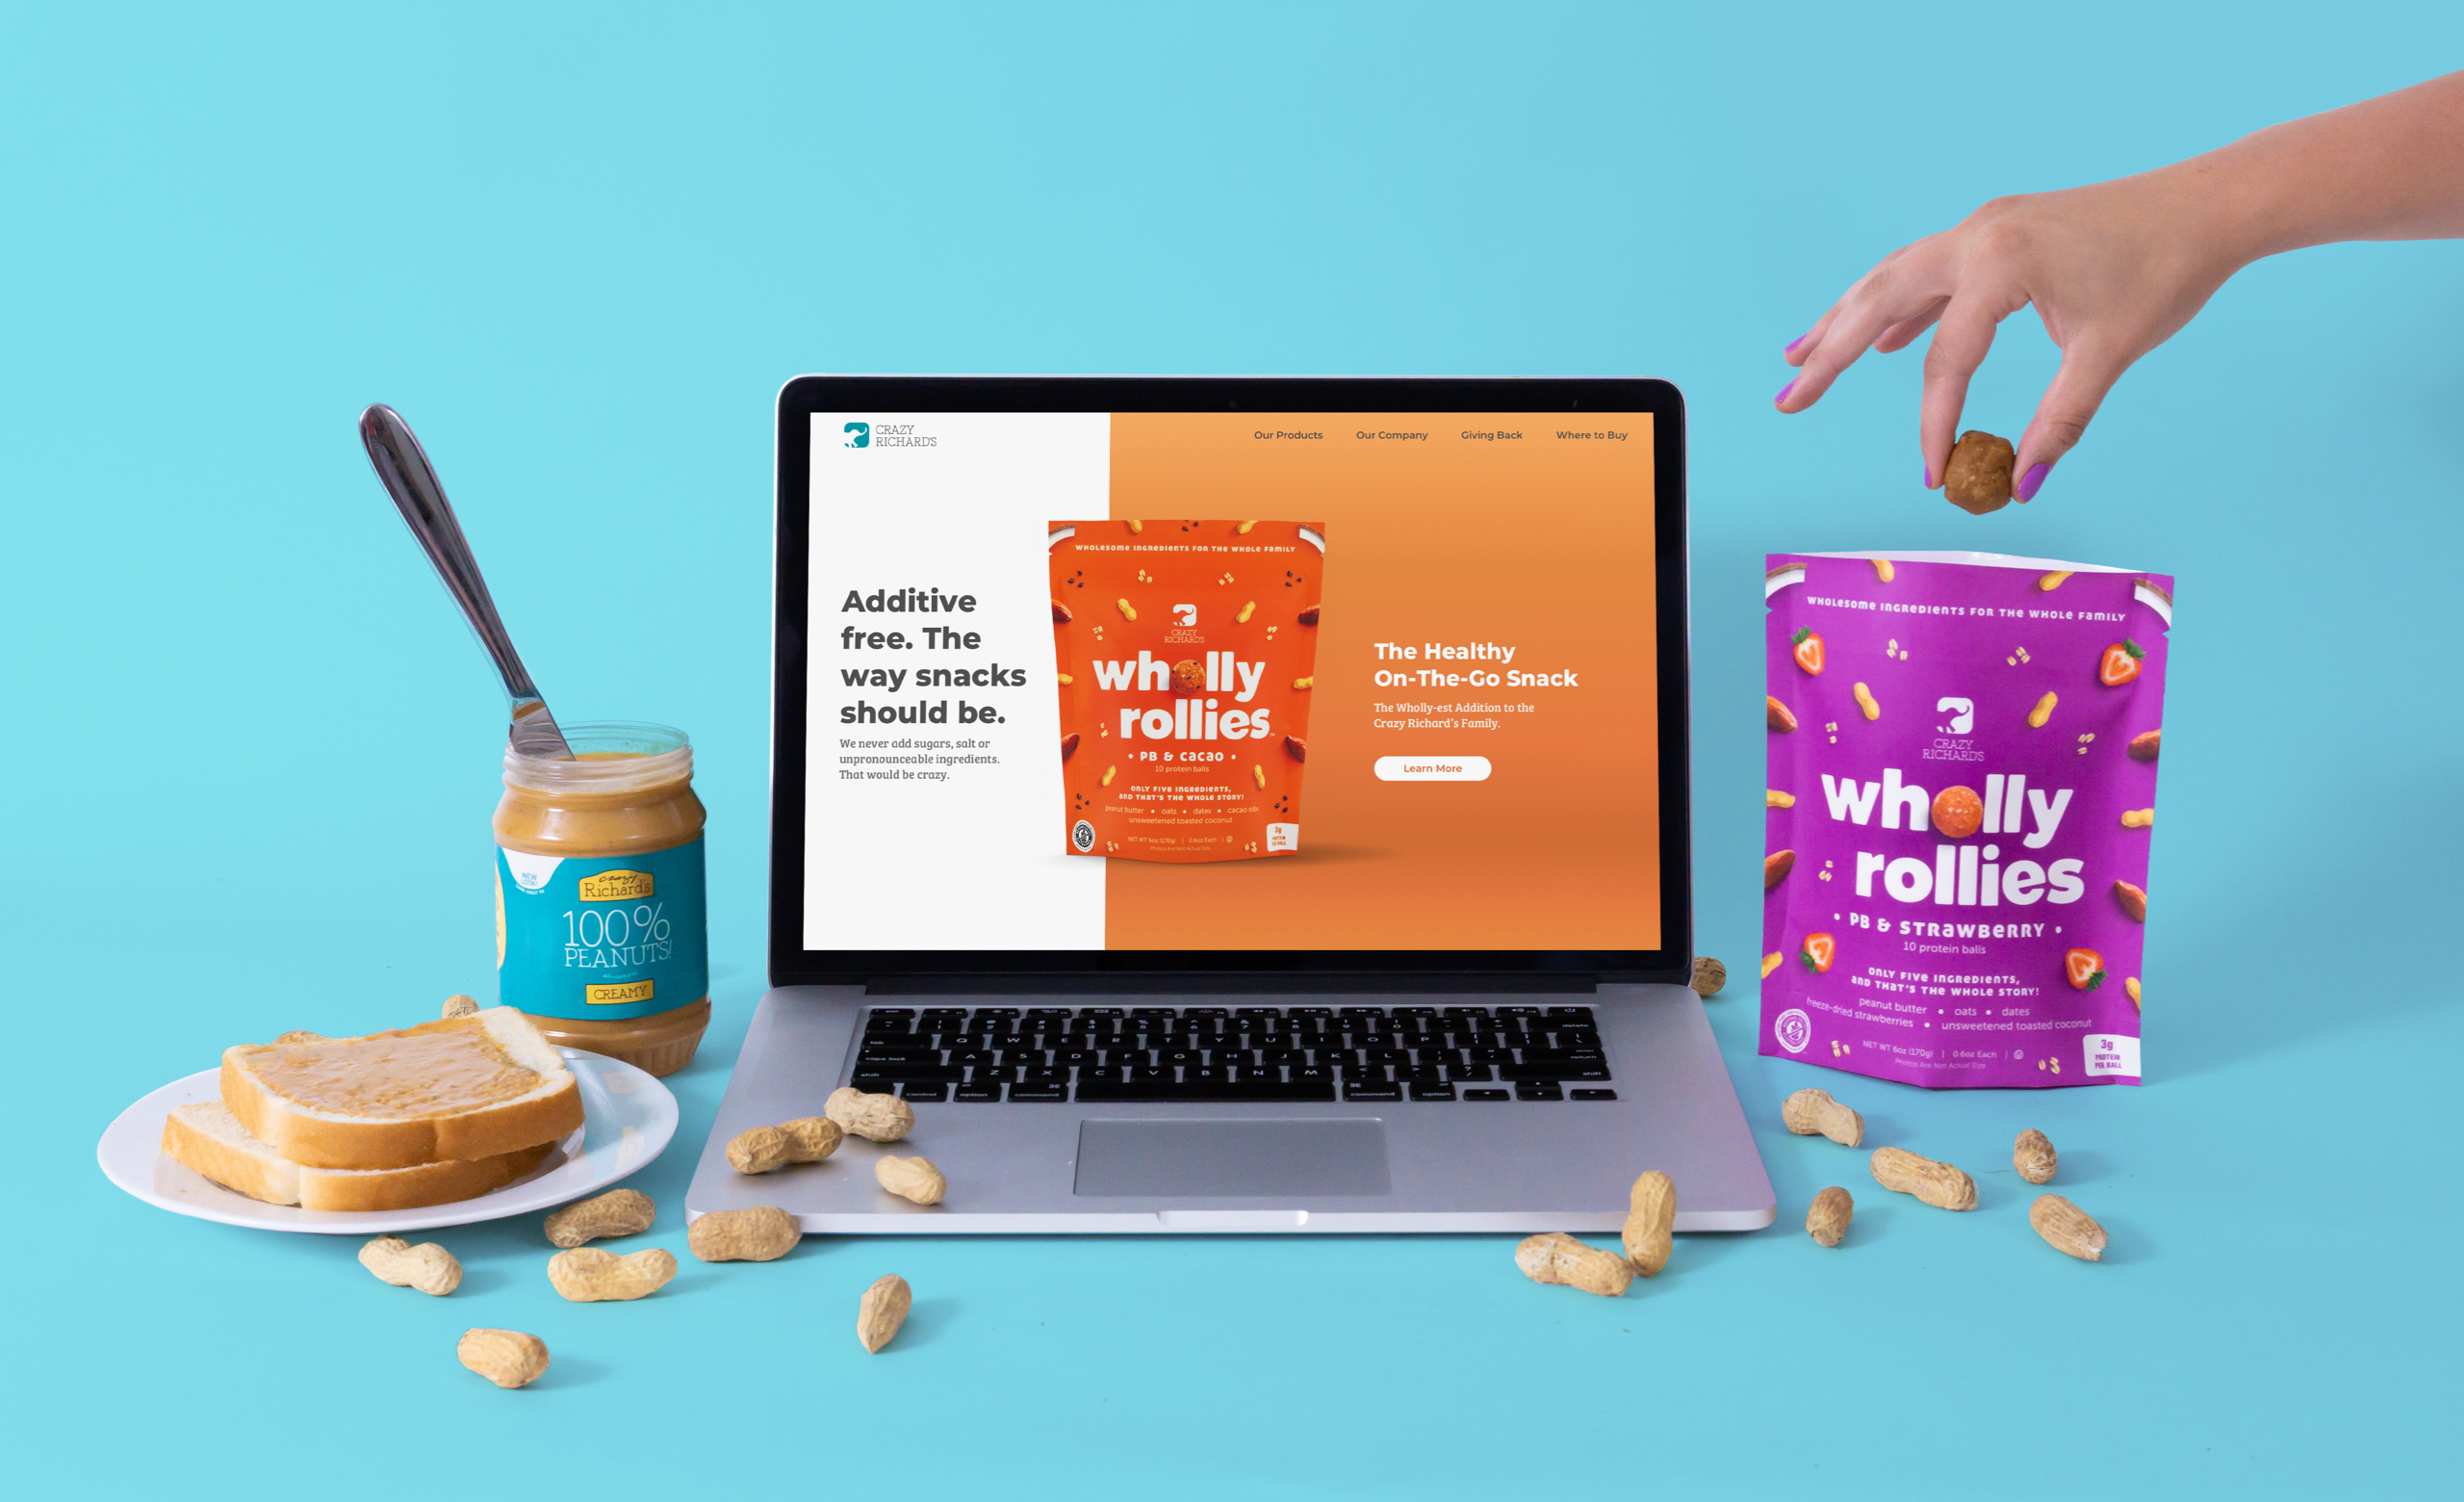 Crazy Richard's website on a laptop next to a peanut butter sandwich and Wholly Rollies